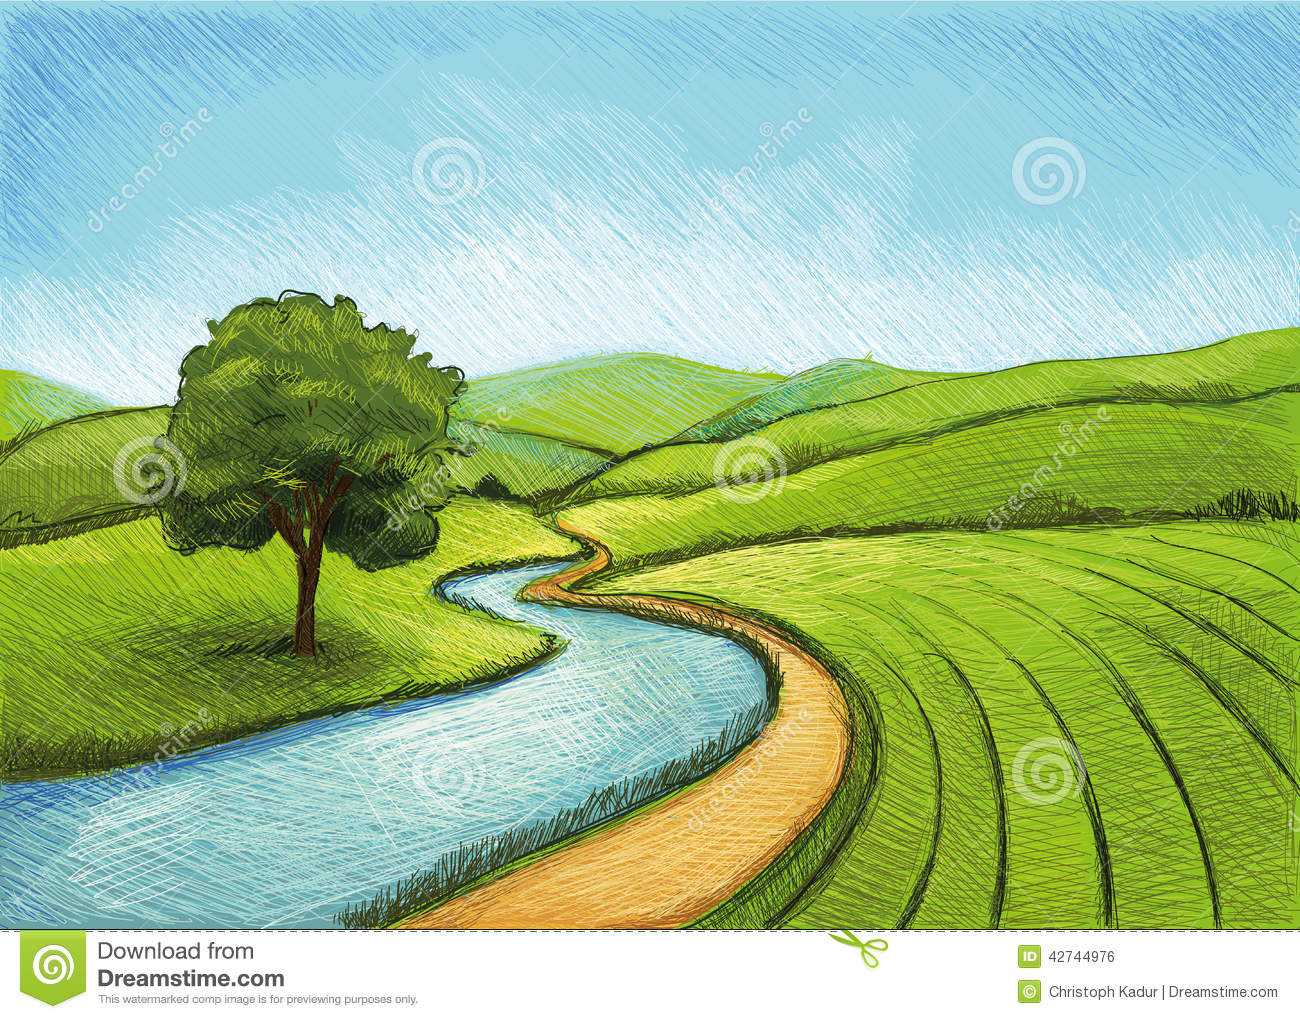 Digital Drawing Landscape with Trees, Plants, Agriculture and a River.